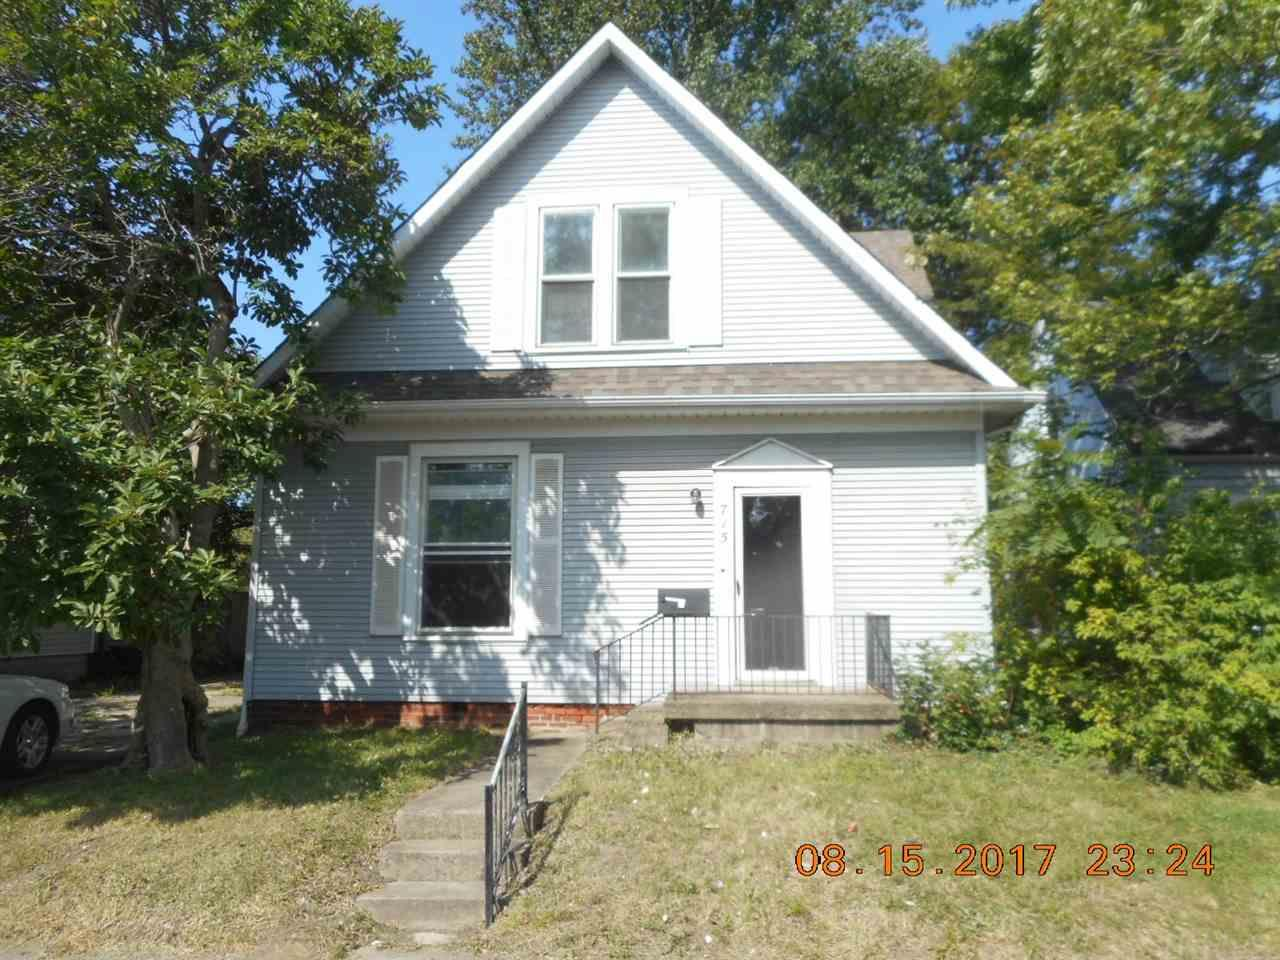 715 S 14th, New Castle, IN 47362